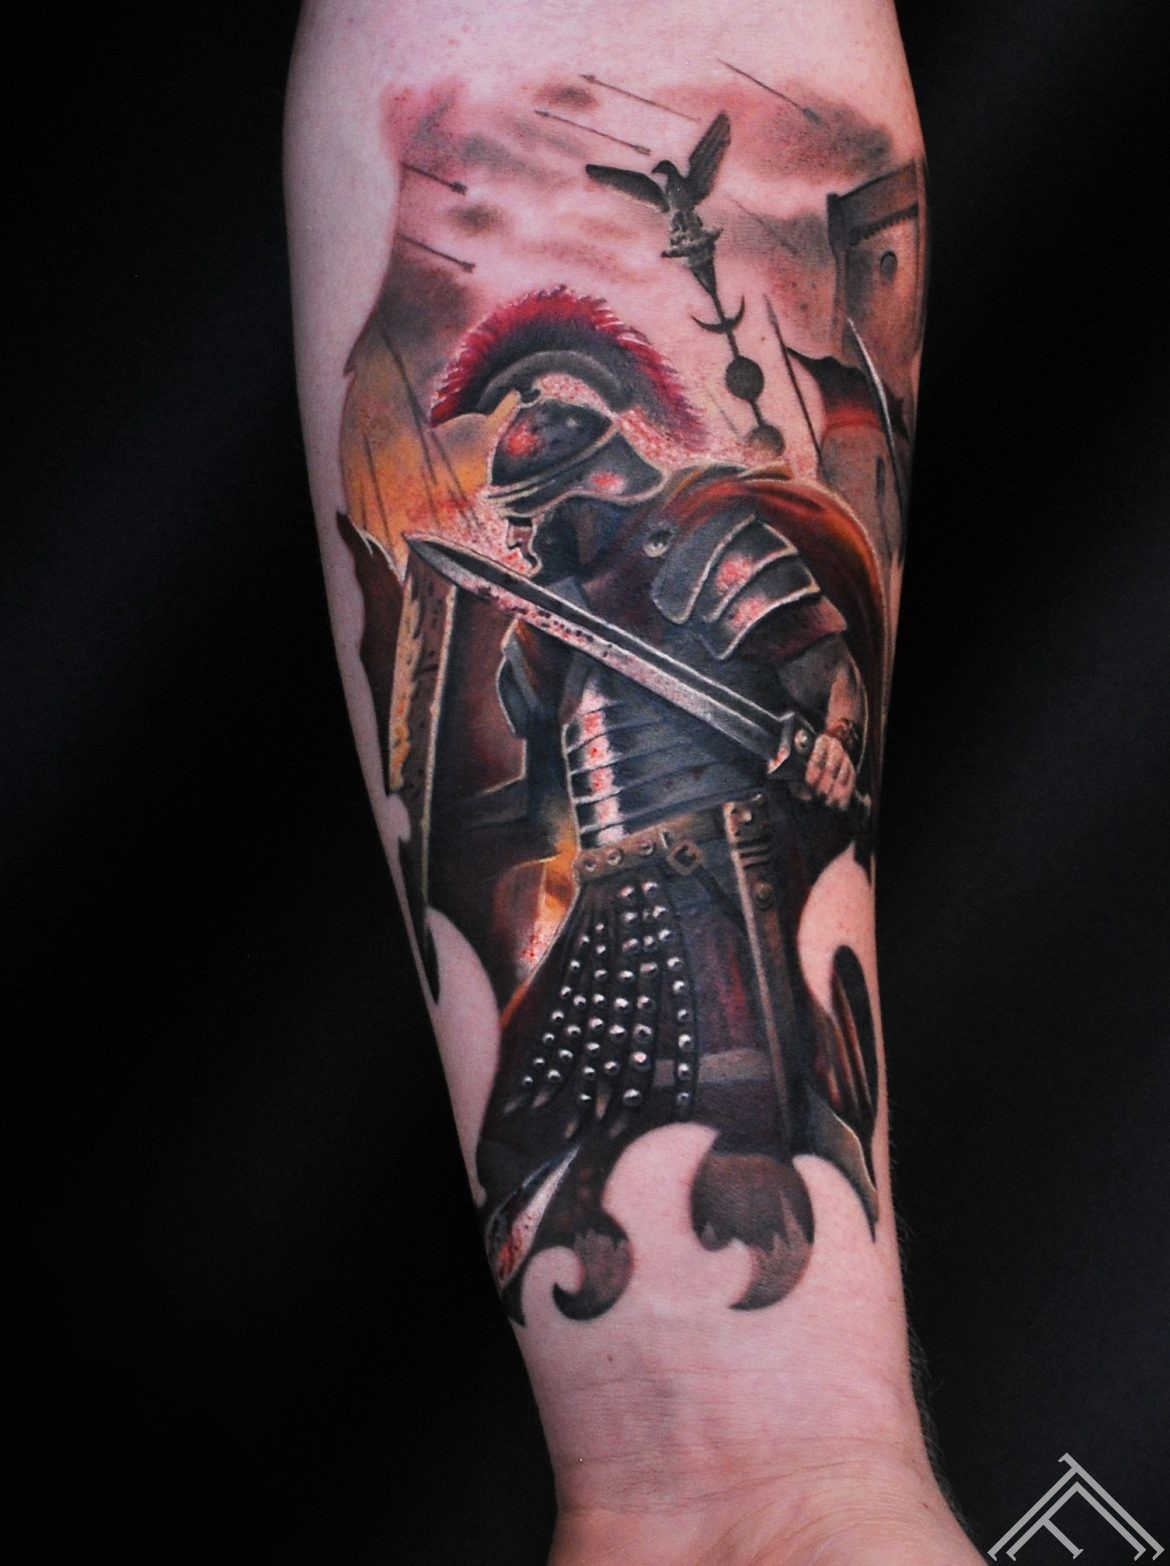 warrior-kareivis-martinsilins-tattoo-tattoofrequency-riga-art-m.l